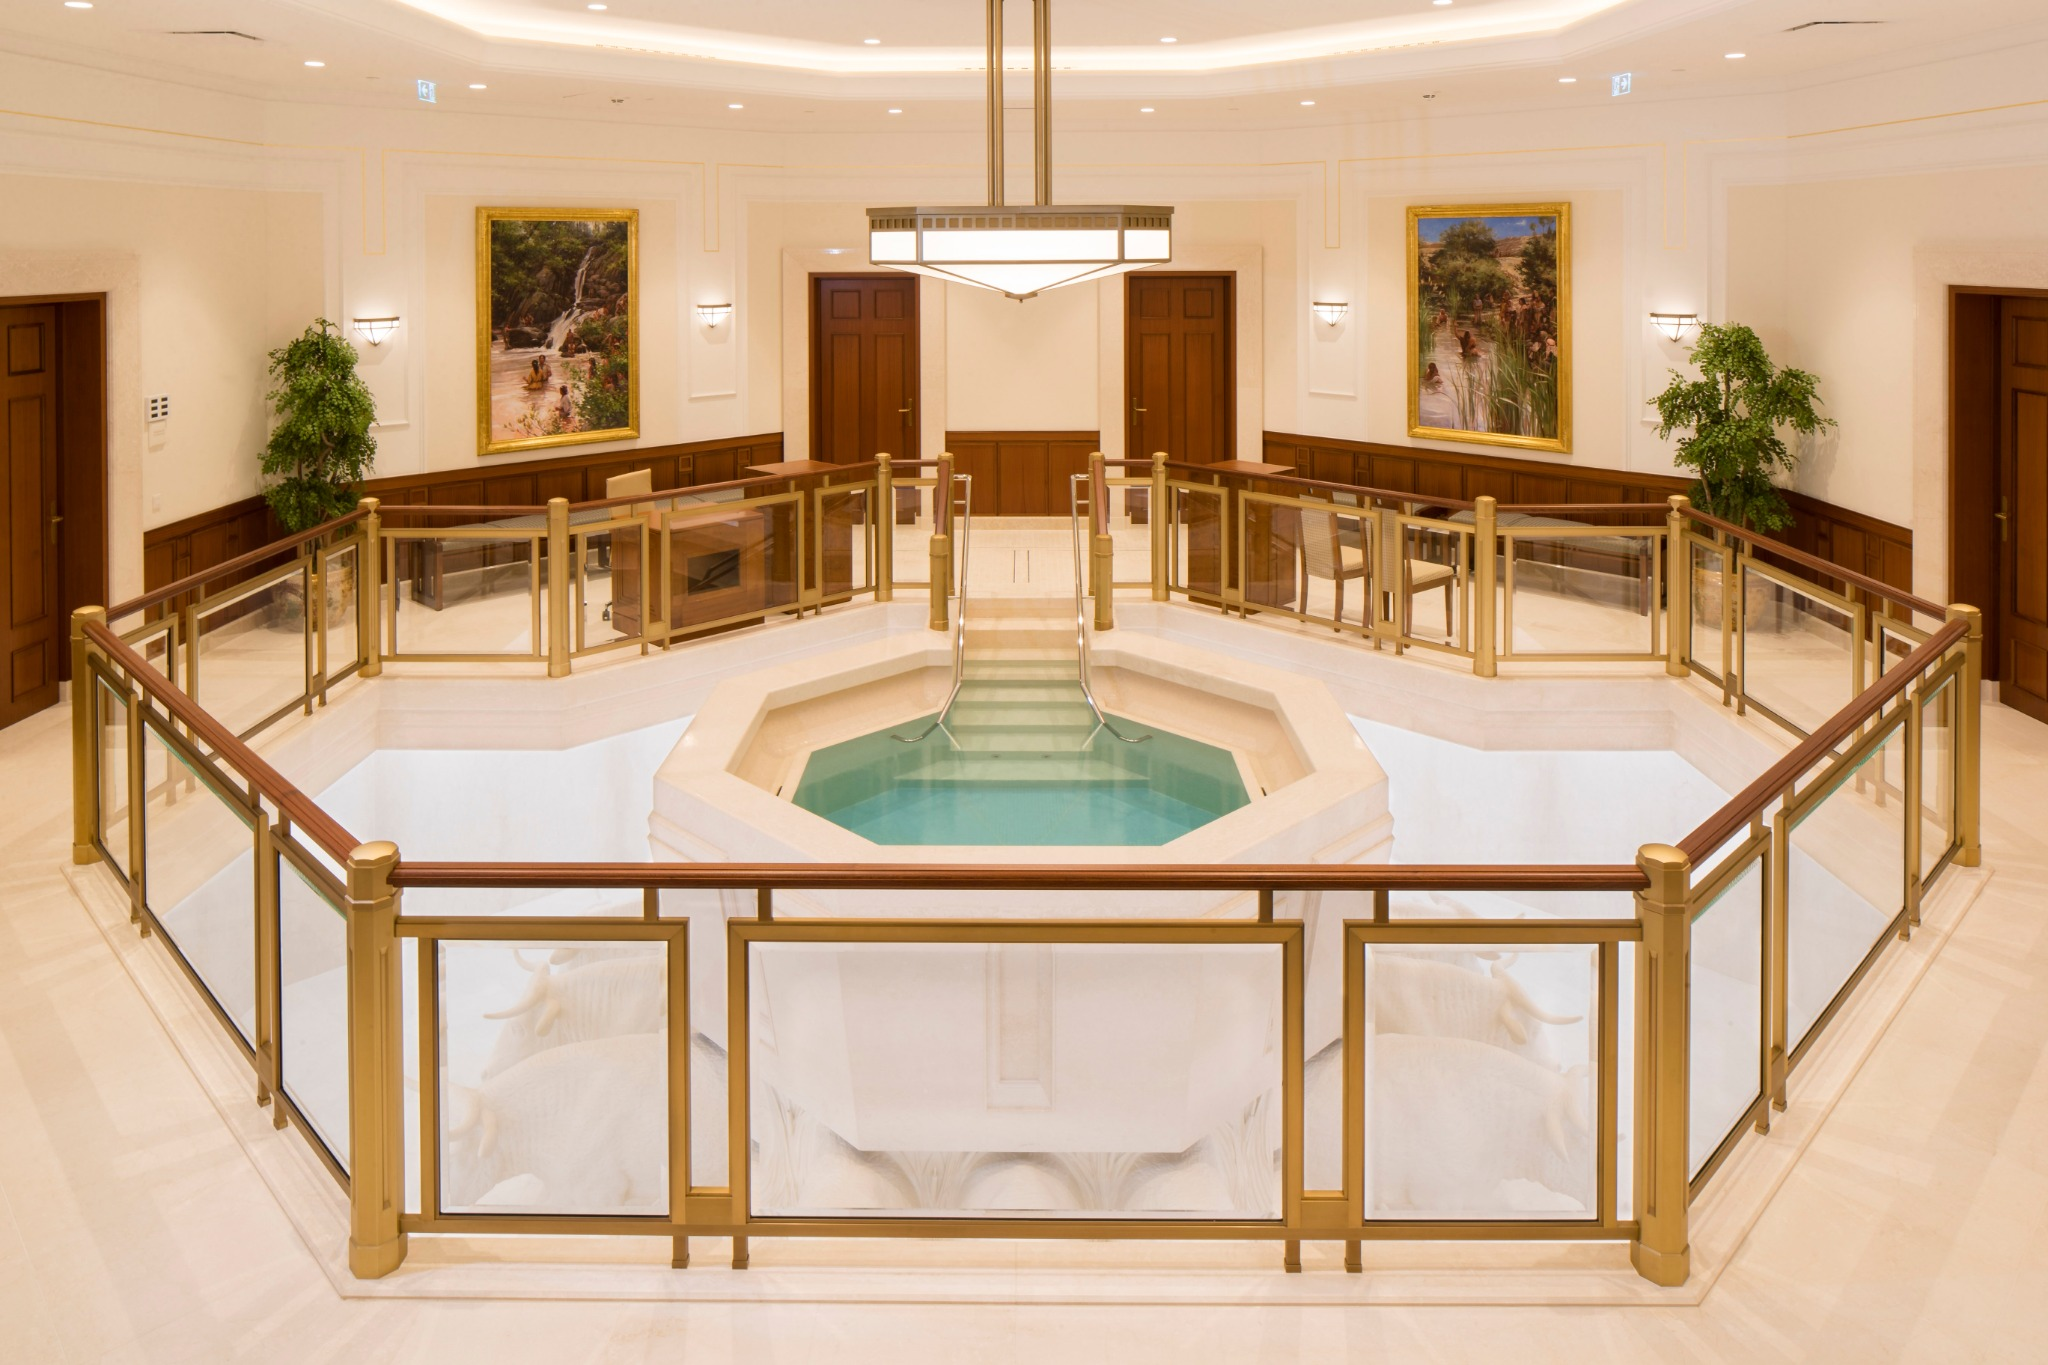 The baptistry in the Frankfurt Germany Temple.